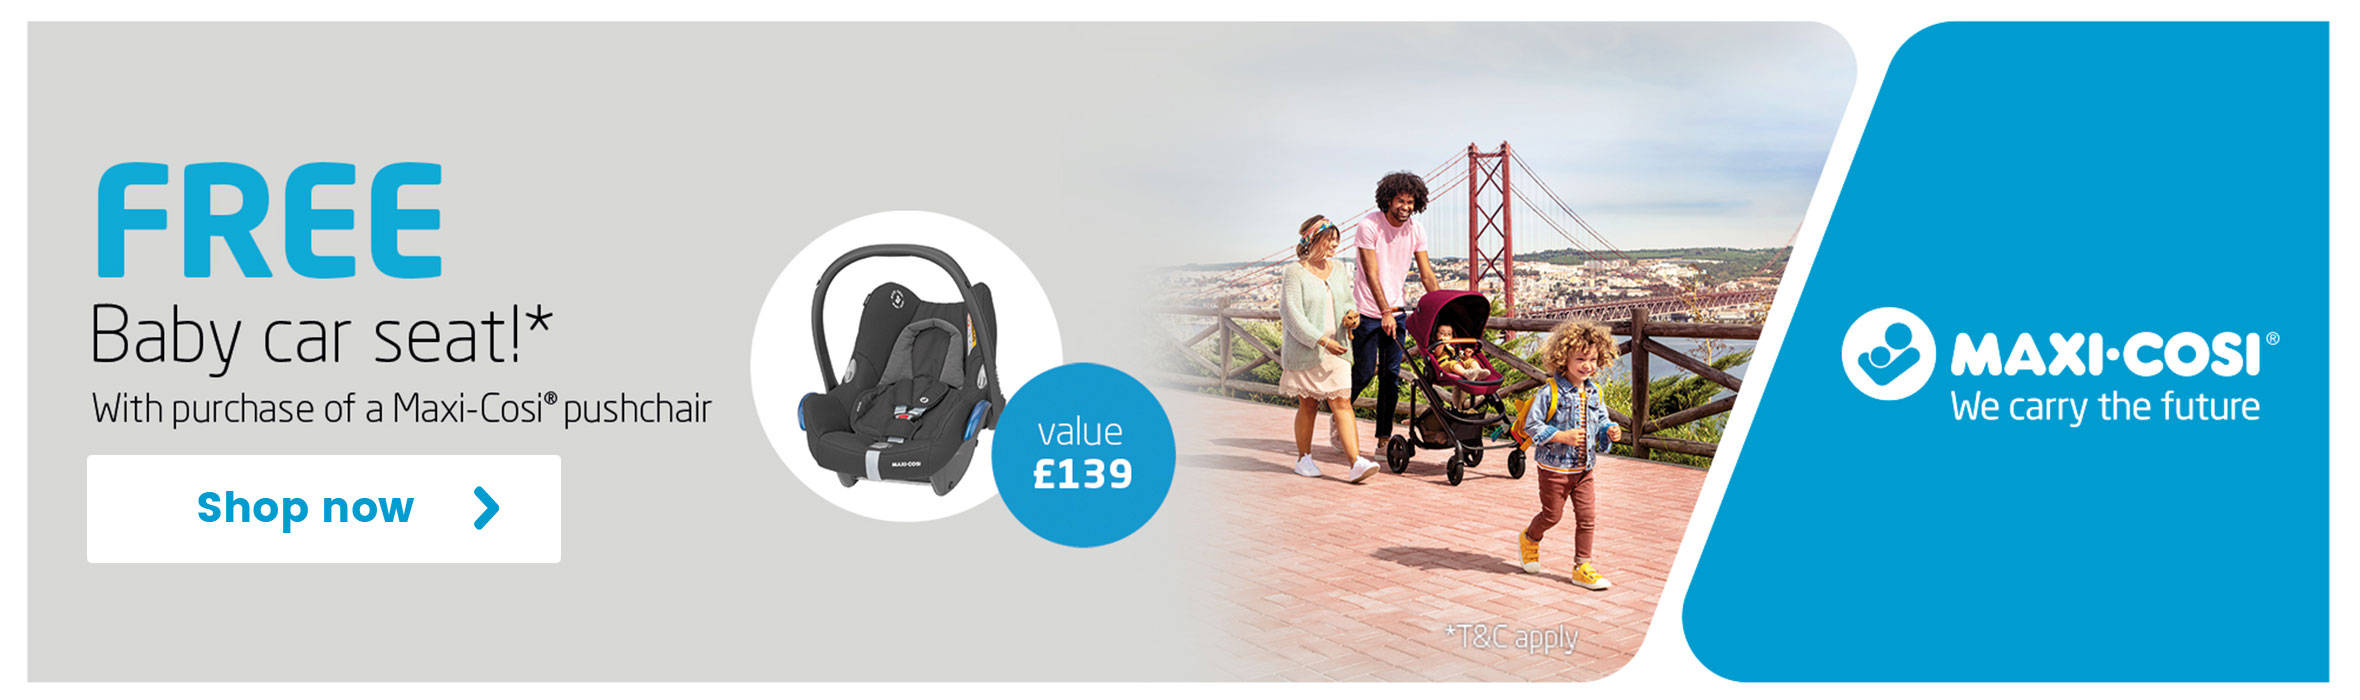 Free baby car seat with every Maxi Cosi!